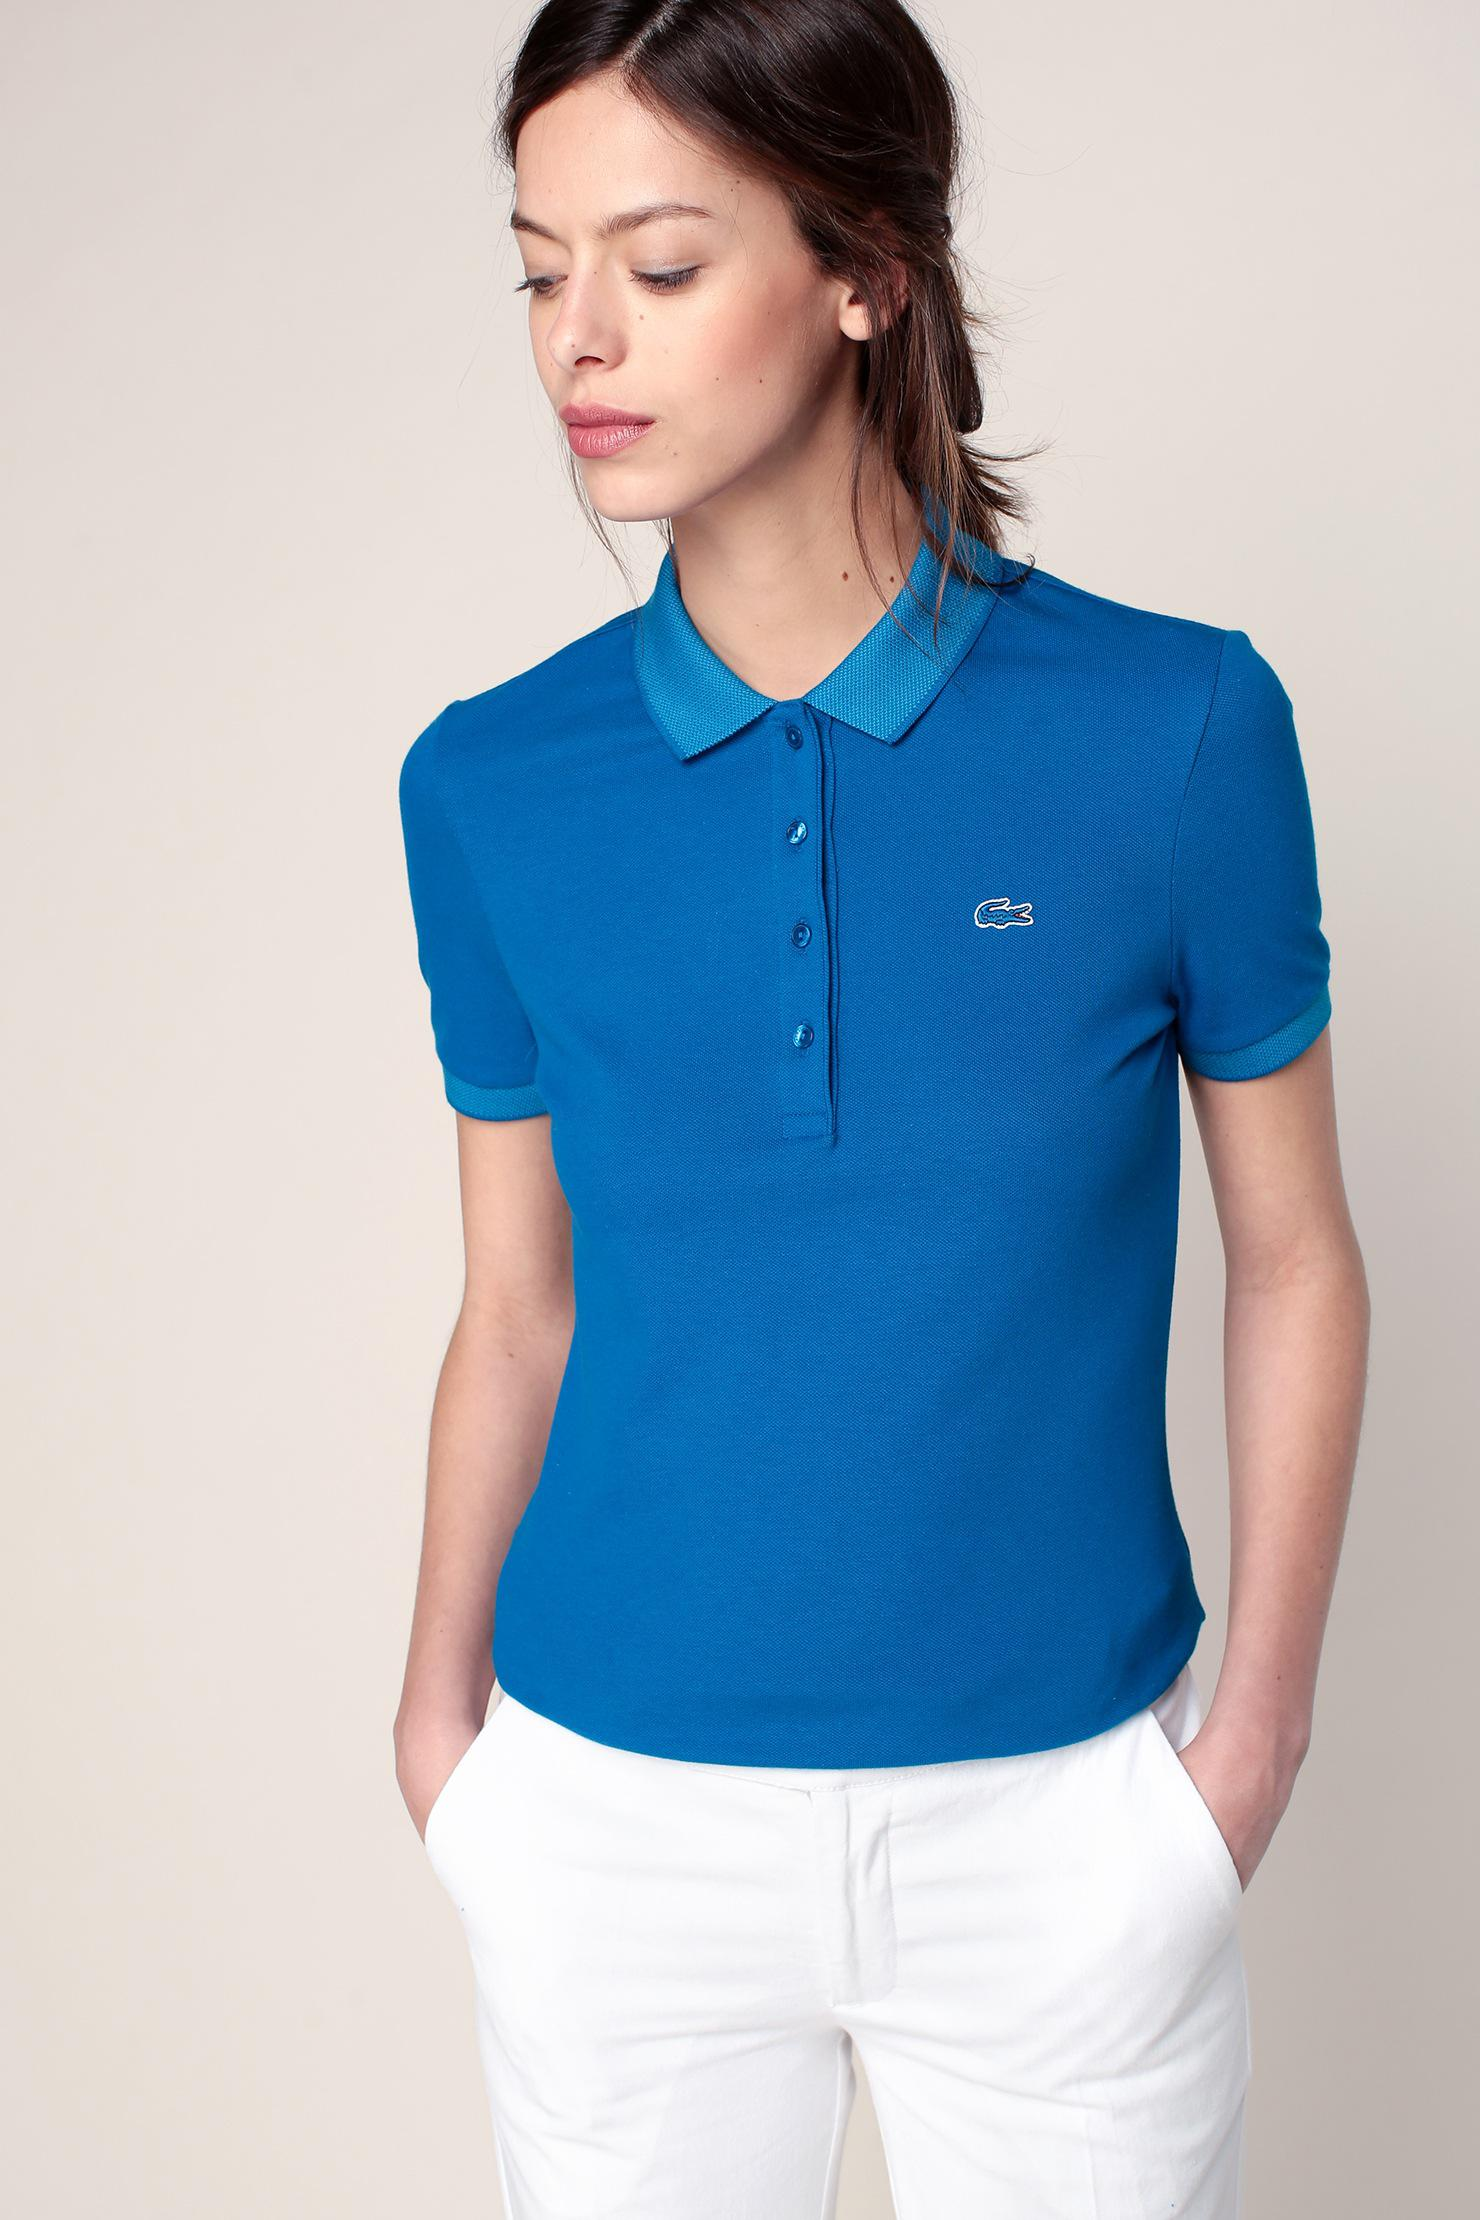 Lyst lacoste t shirts polo shirts in blue - Lacoste poloshirt weiay ...